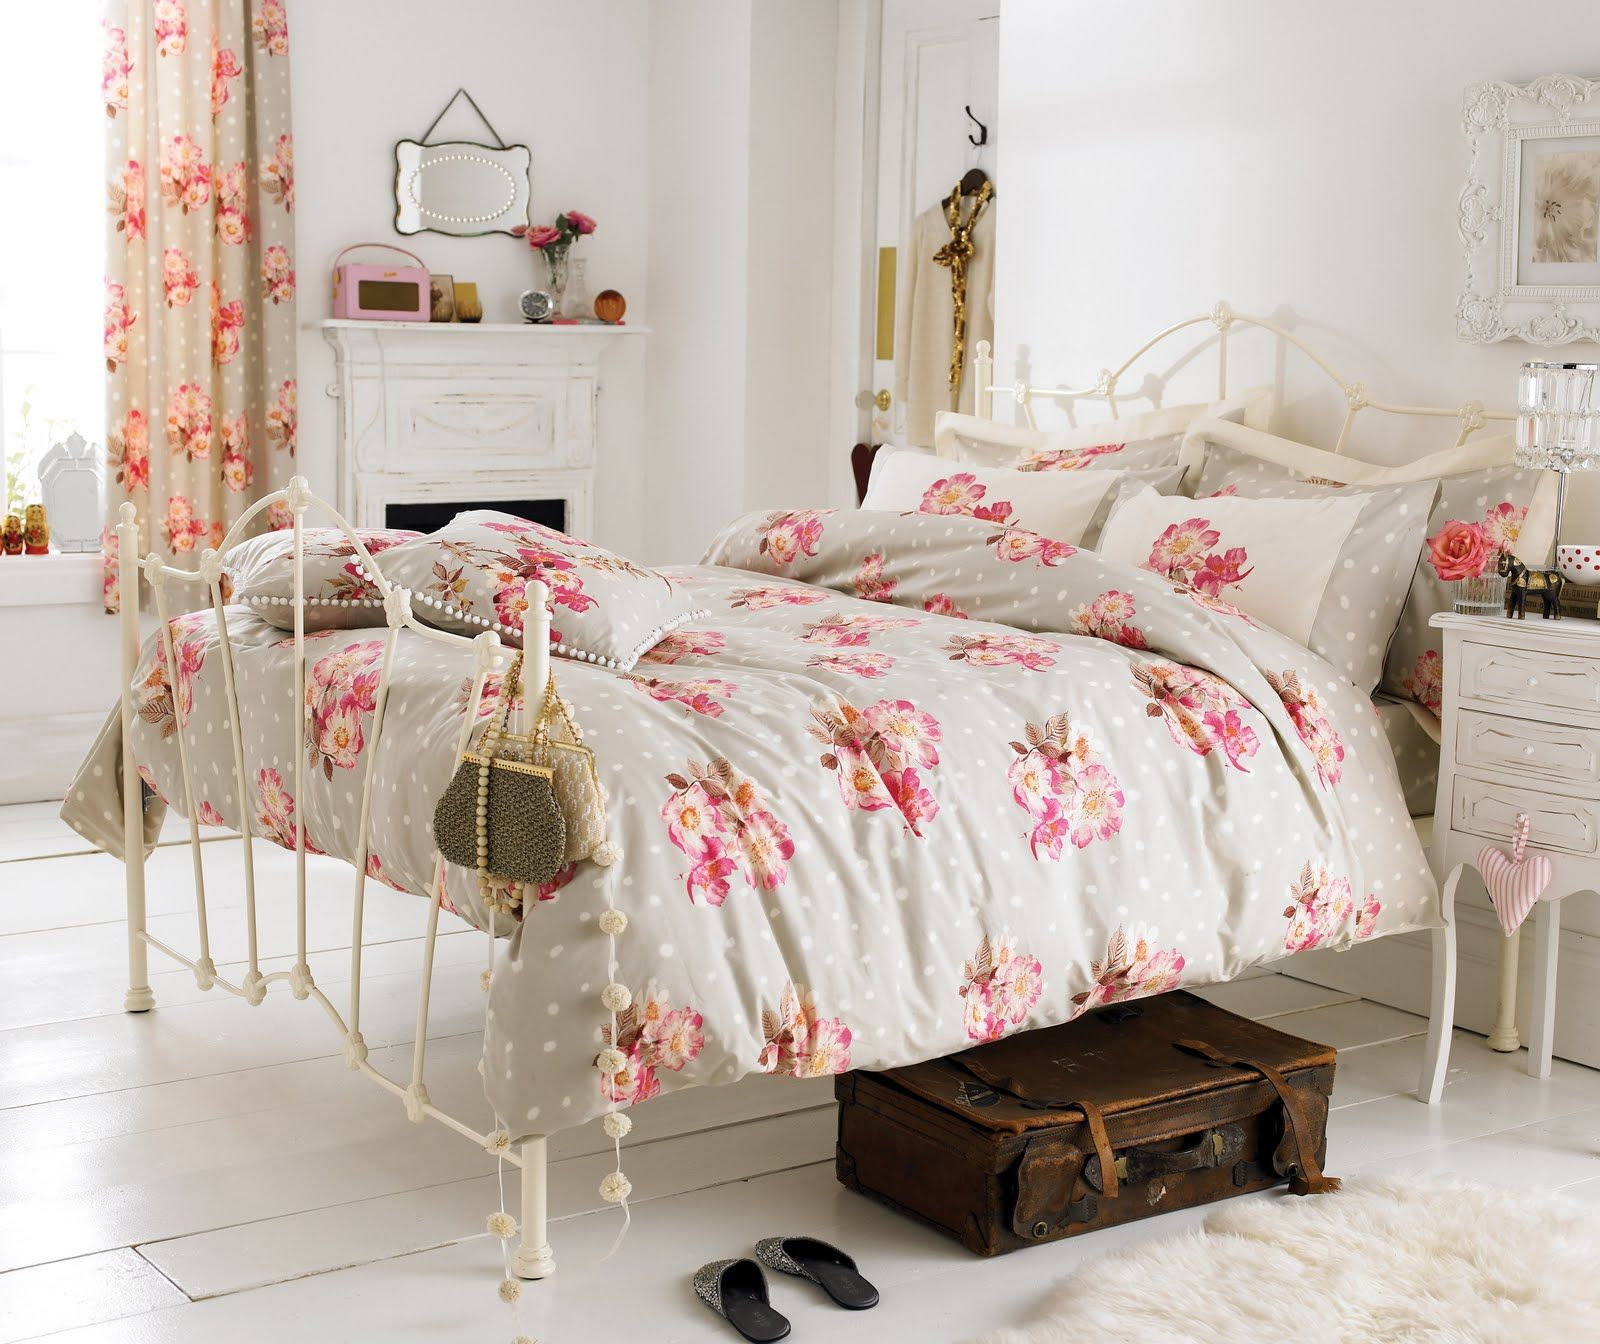 1000+ images about Vintage Bedroom on Pinterest | Shabby chic ...